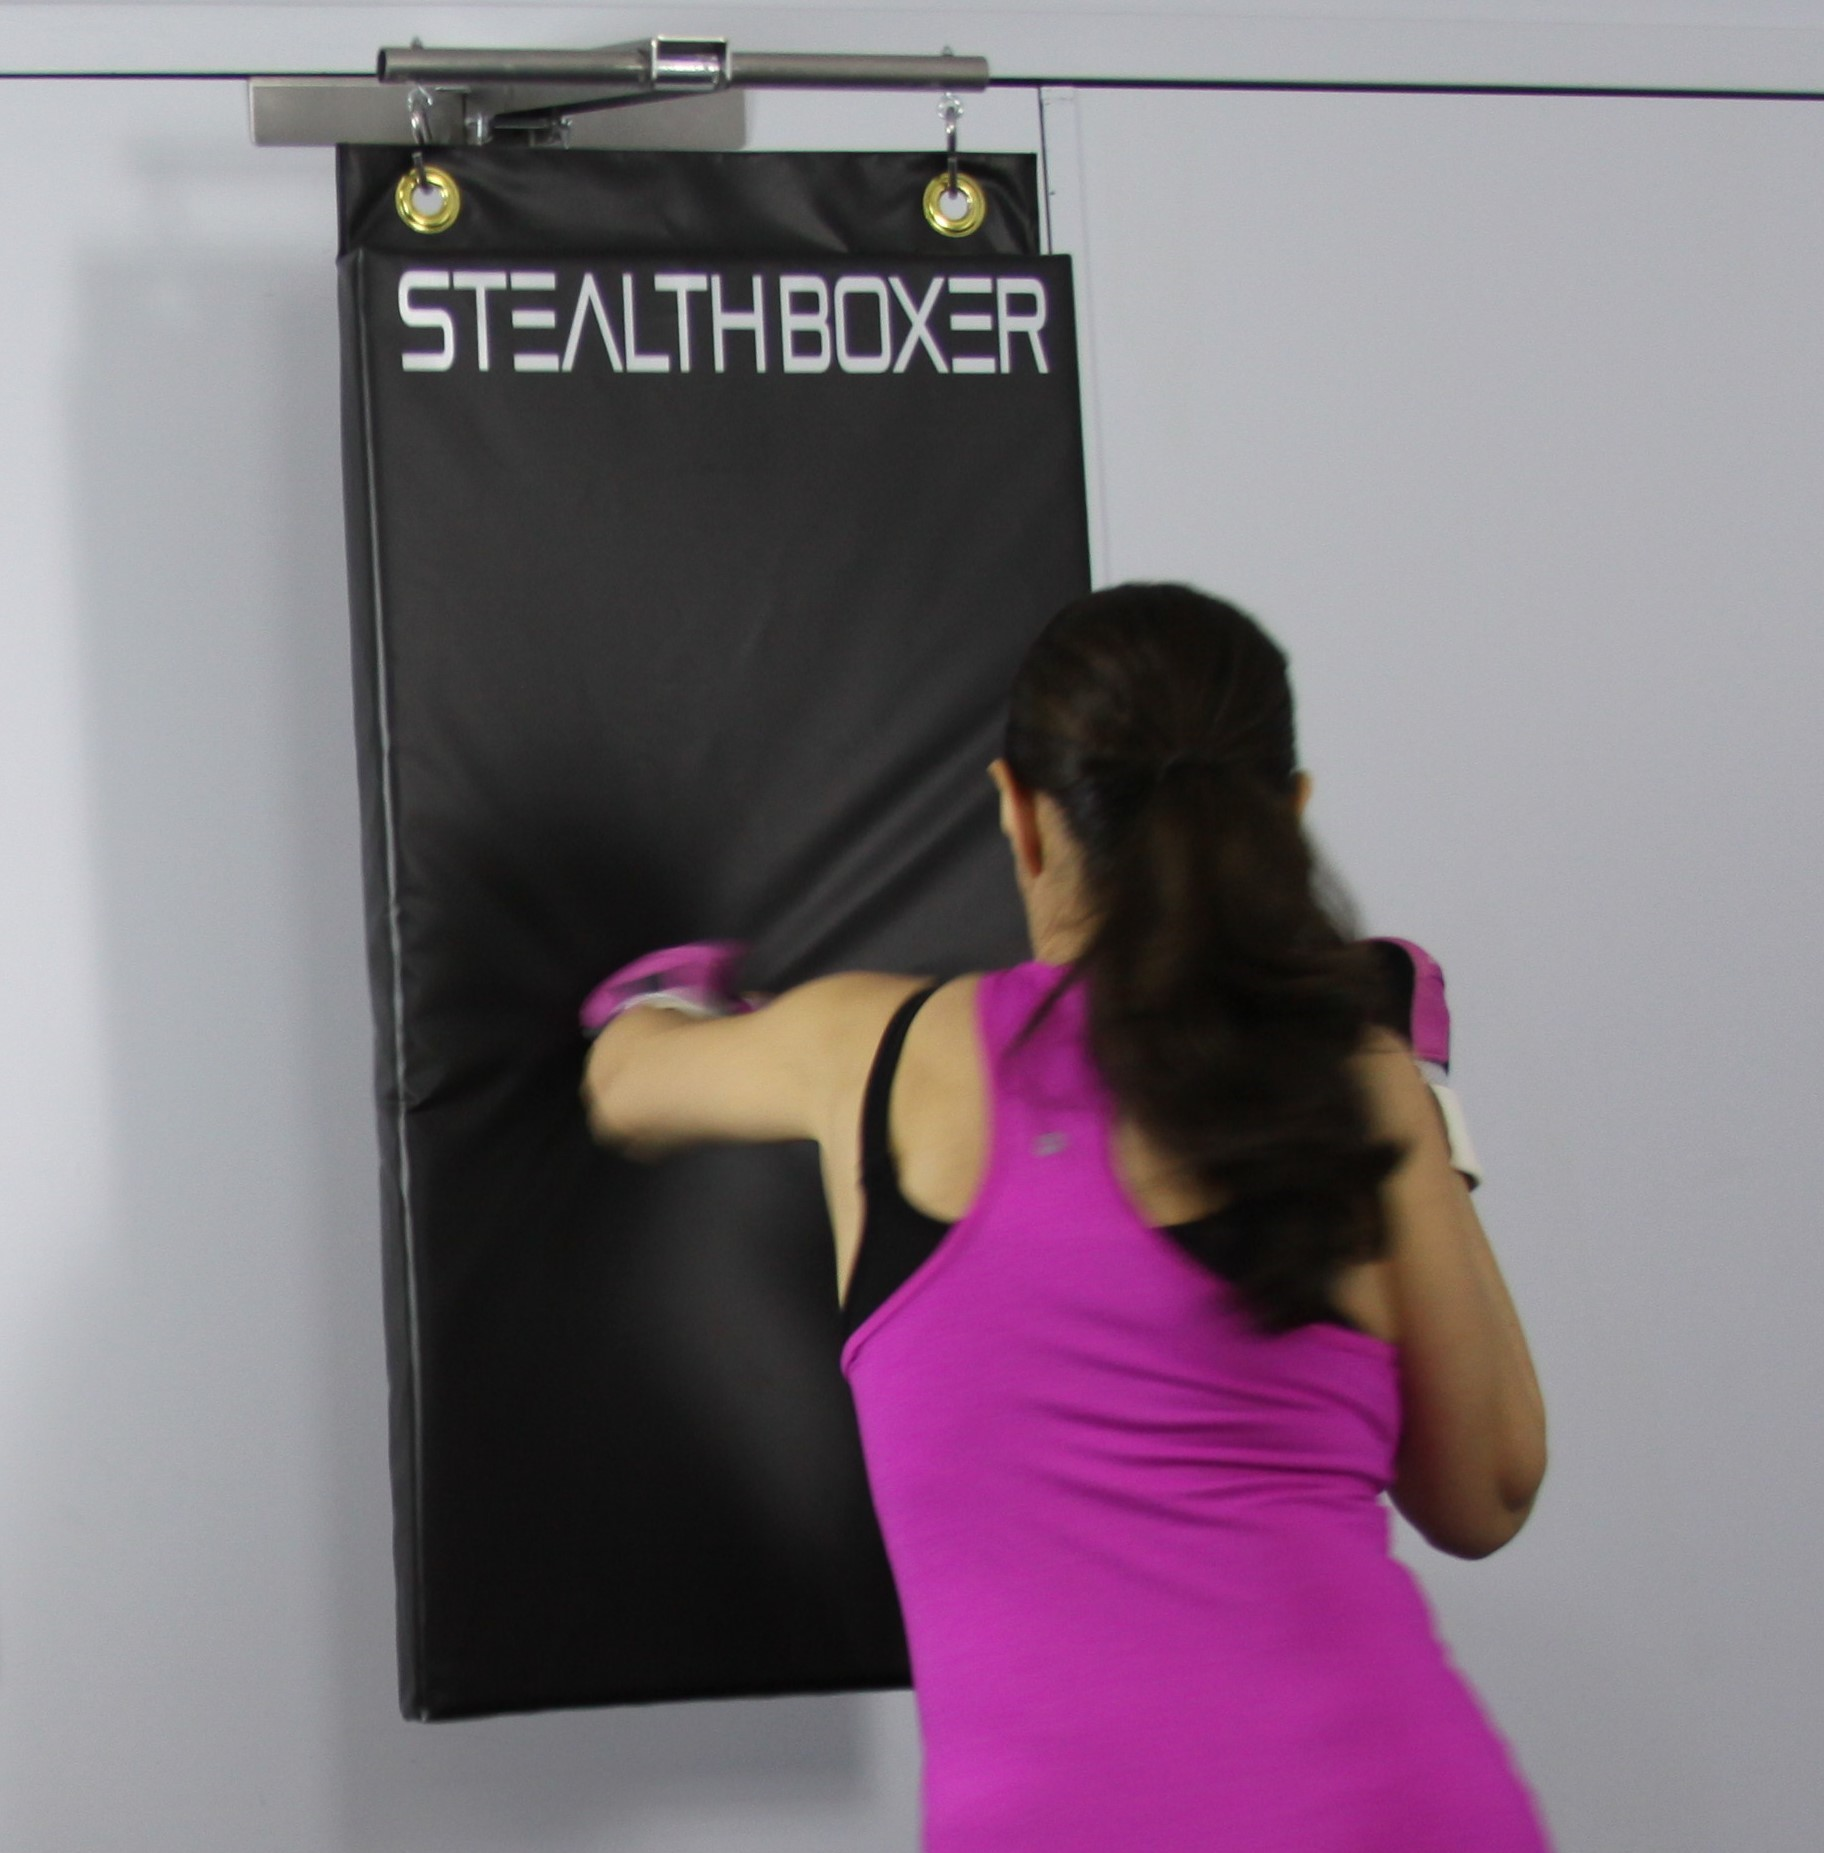 Stealthboxer Allows Training In Privacy Of Your Own Home